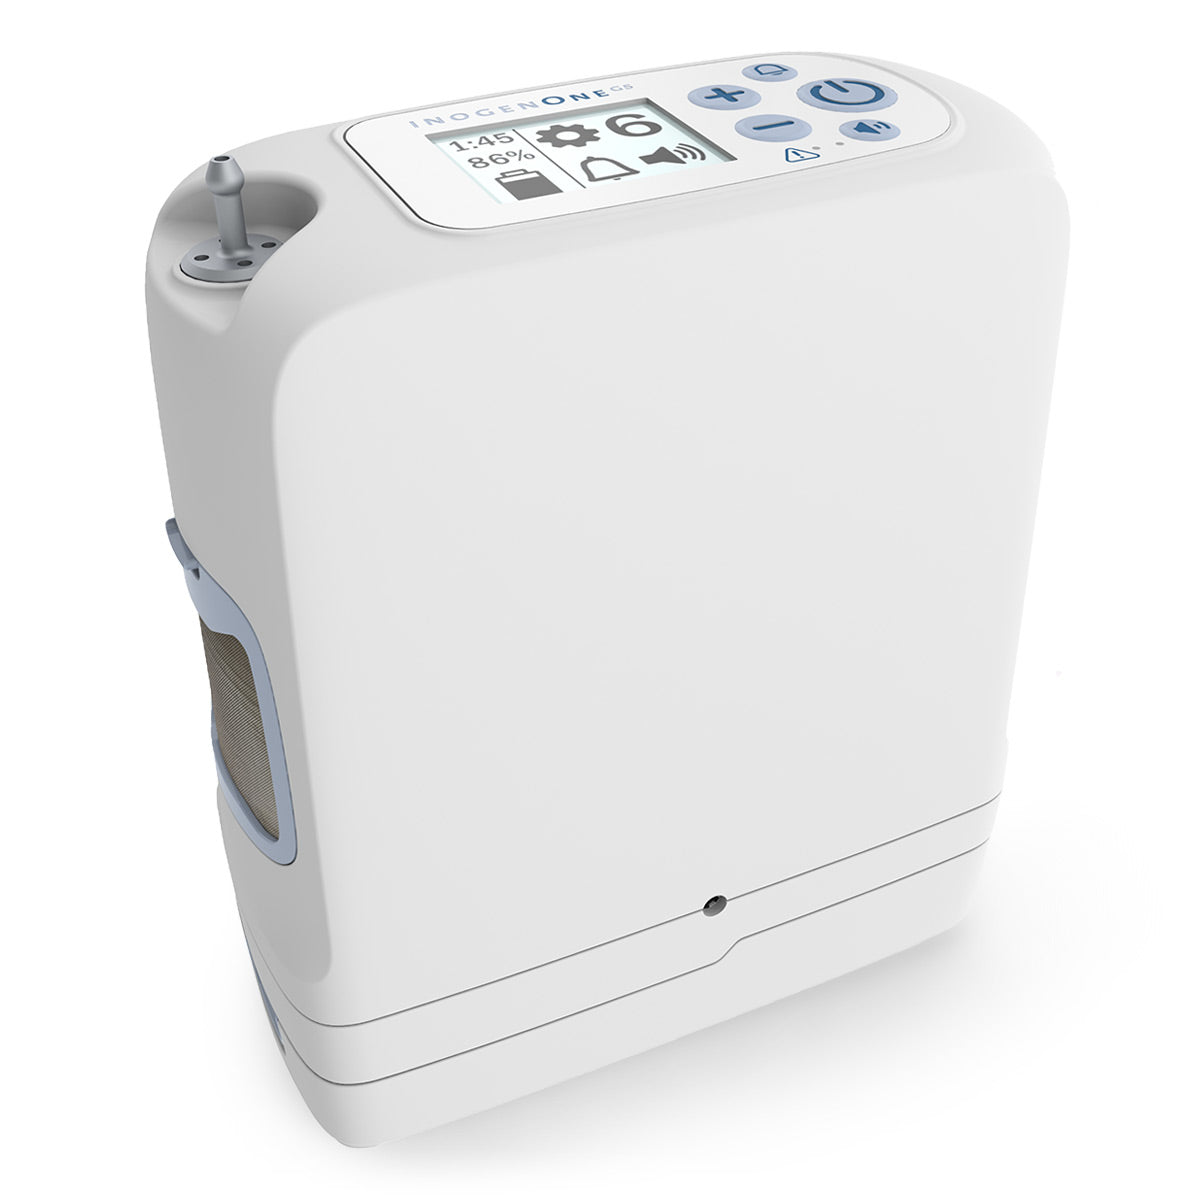 Inogen One G5 Portable Oxygen Concentrator Bundle